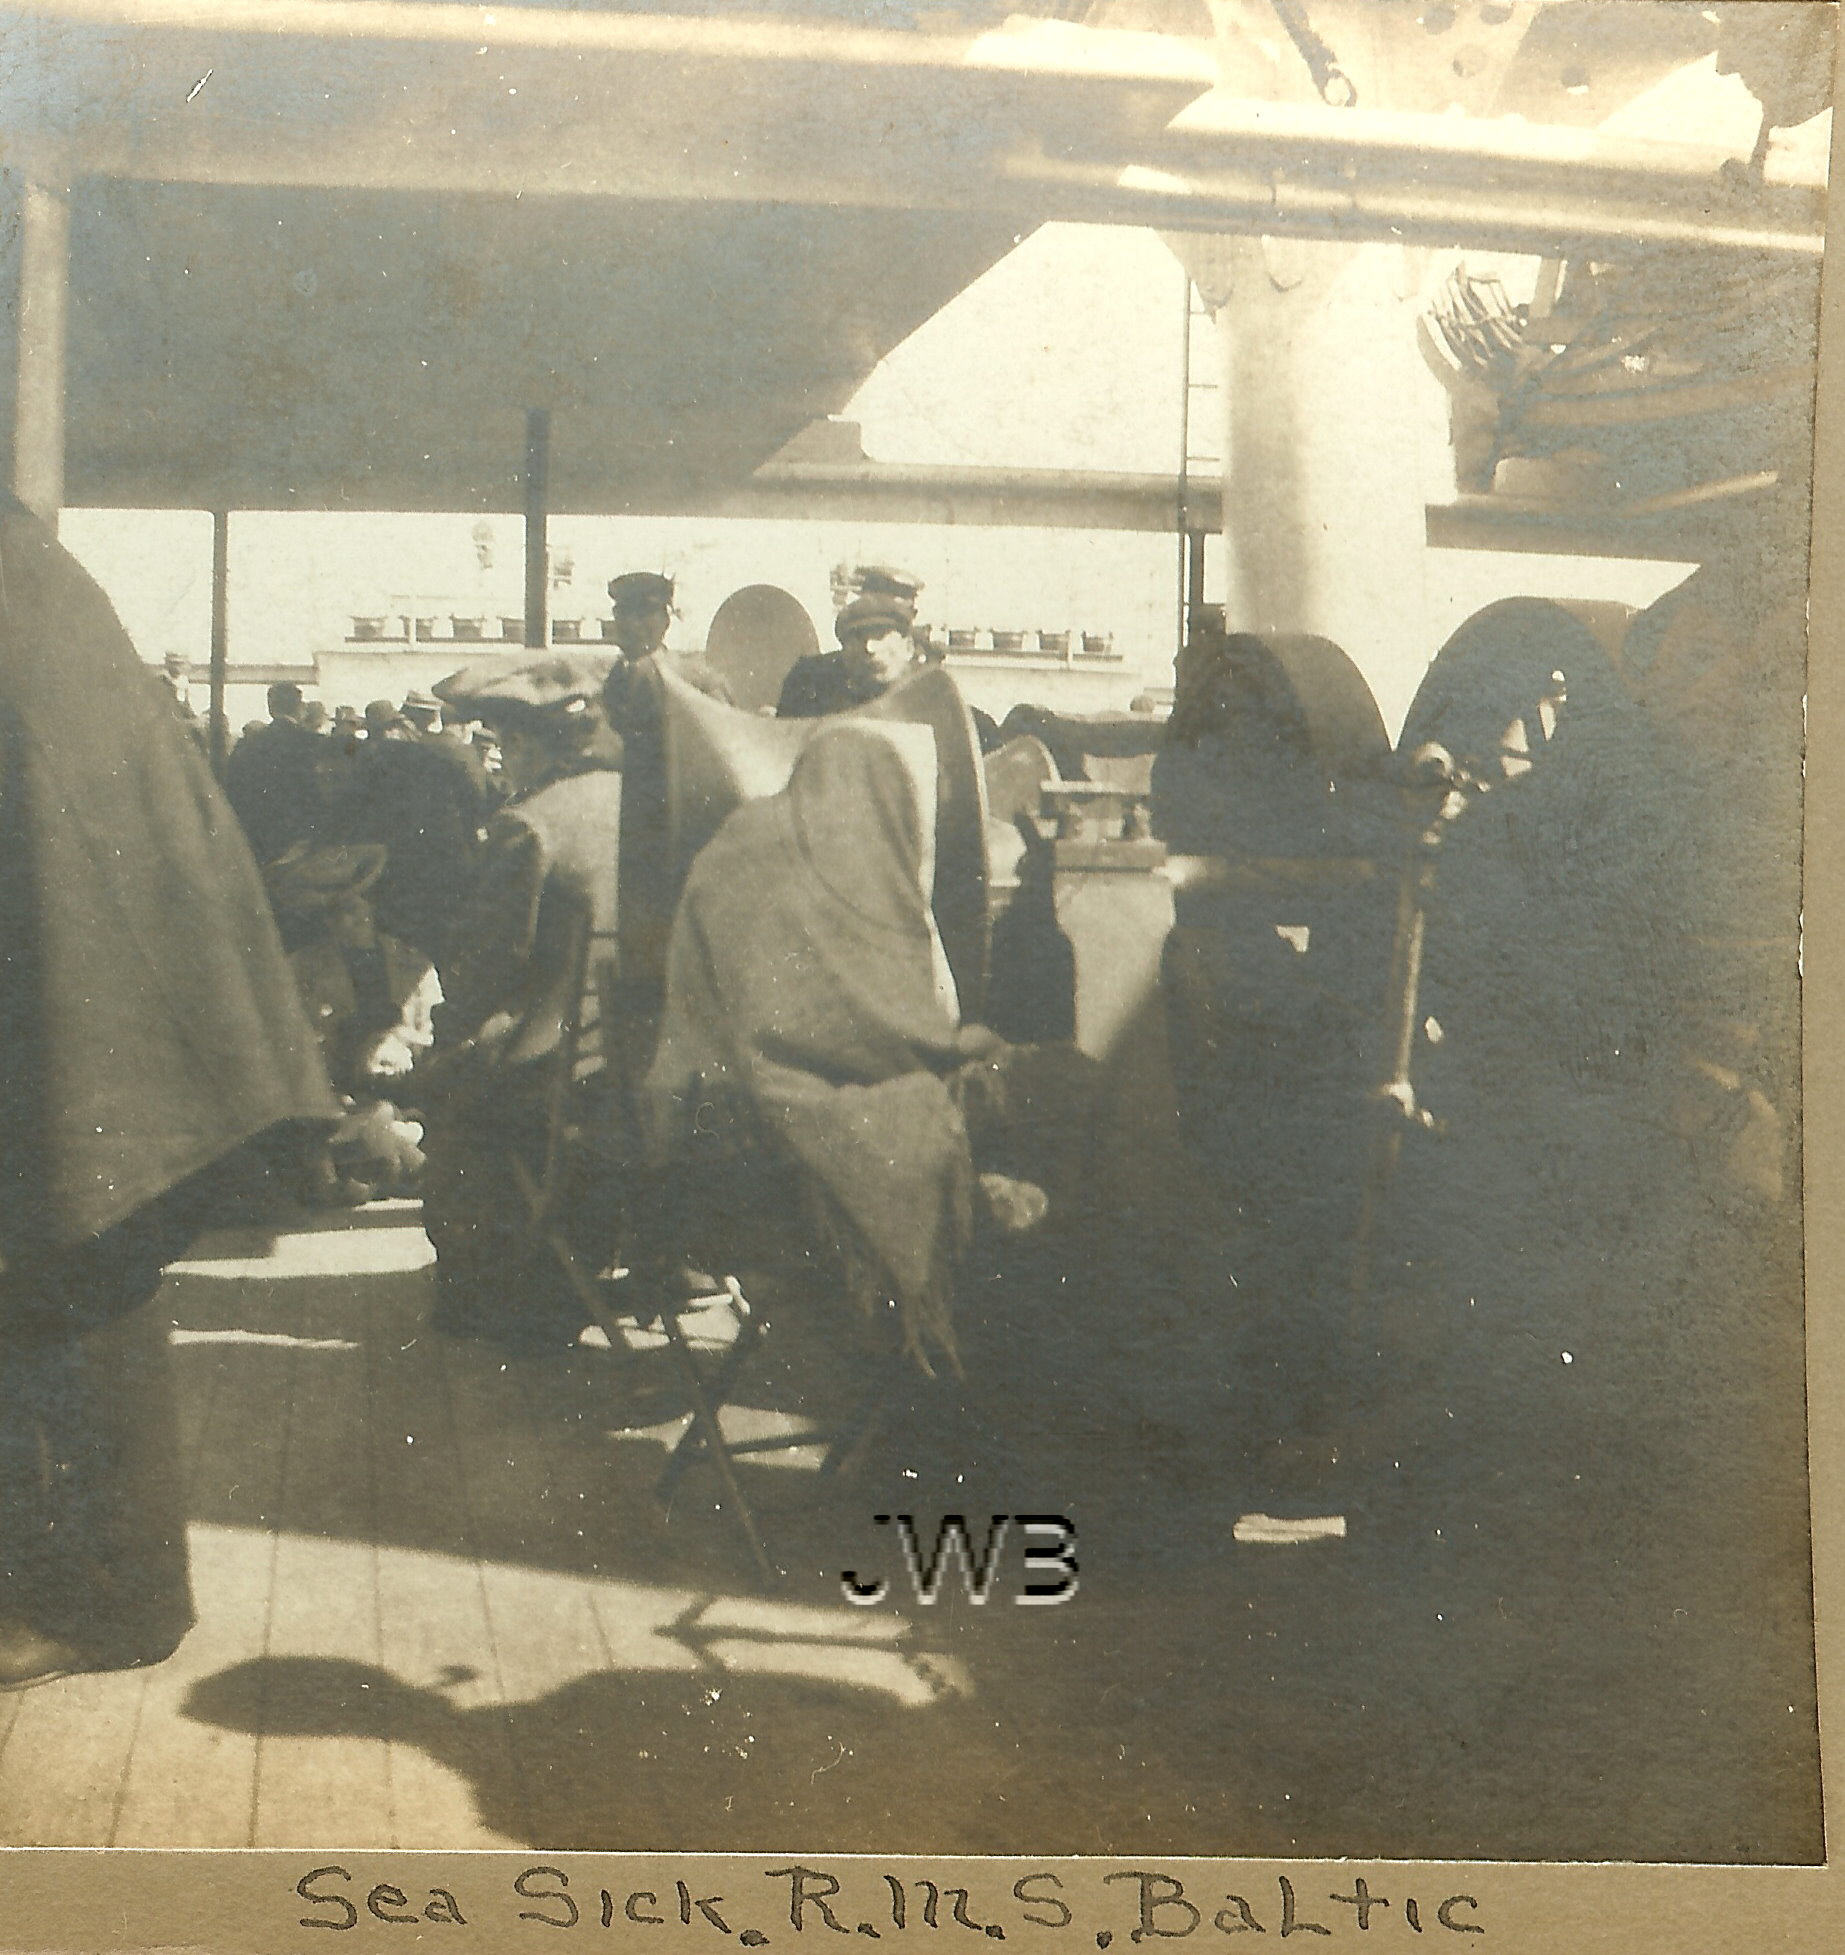 Seasick on deck of RMS Baltic, during 1904 voyage.  Rare stereograph view